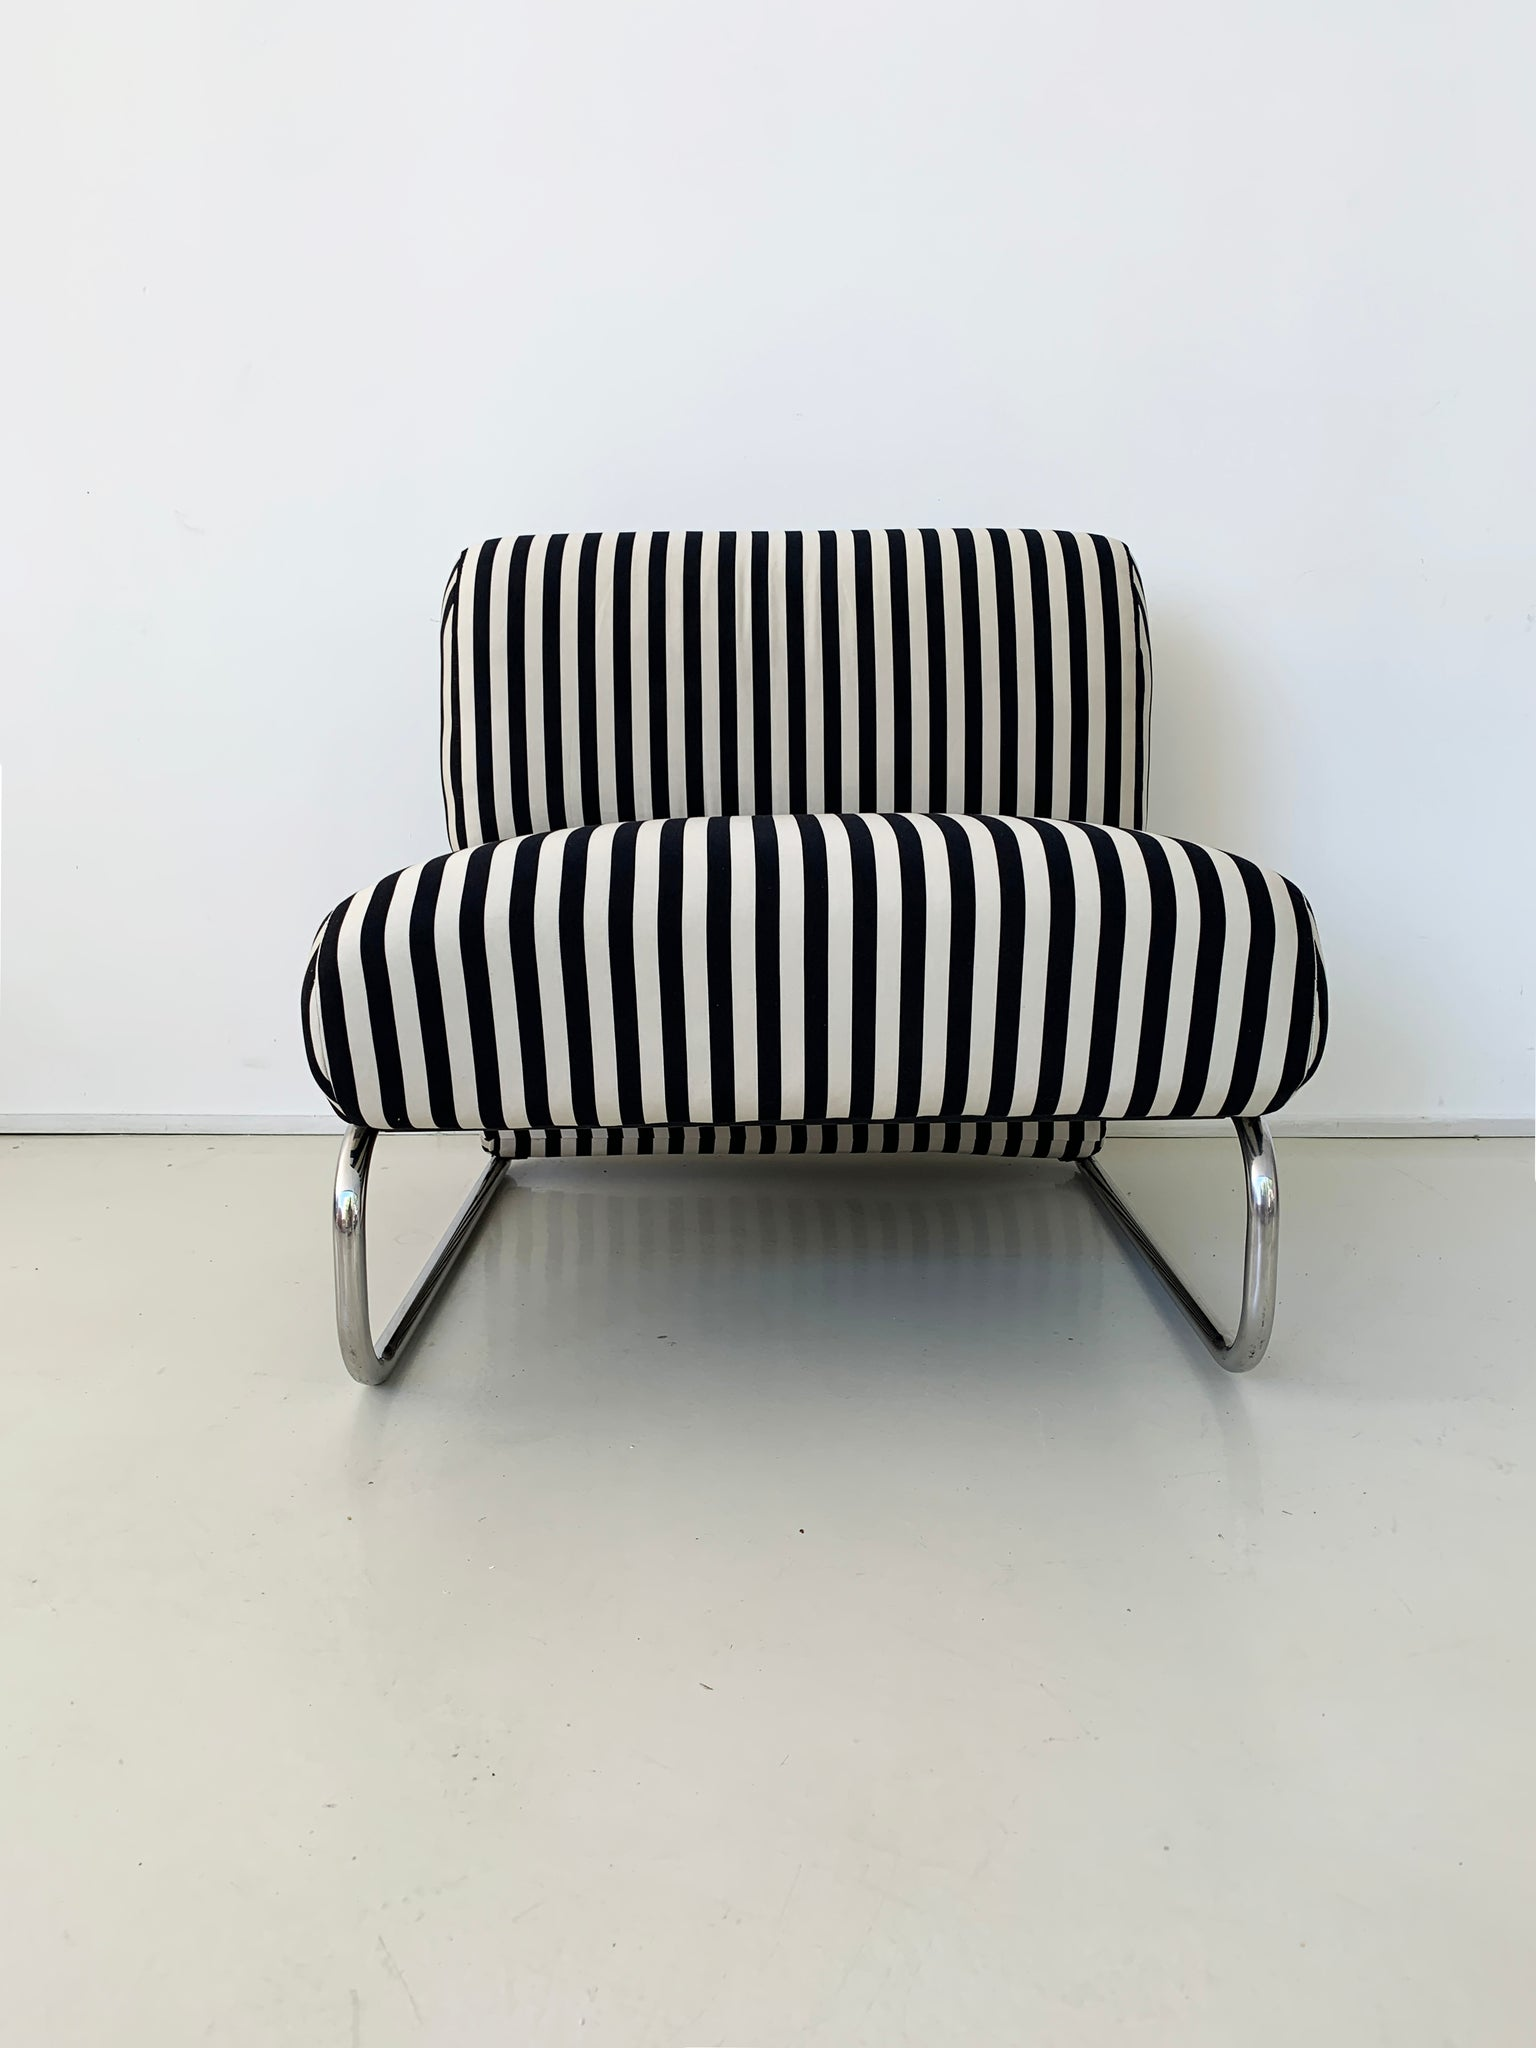 1970s Striped Edward Axel Roffman Tubular Chrome Chair